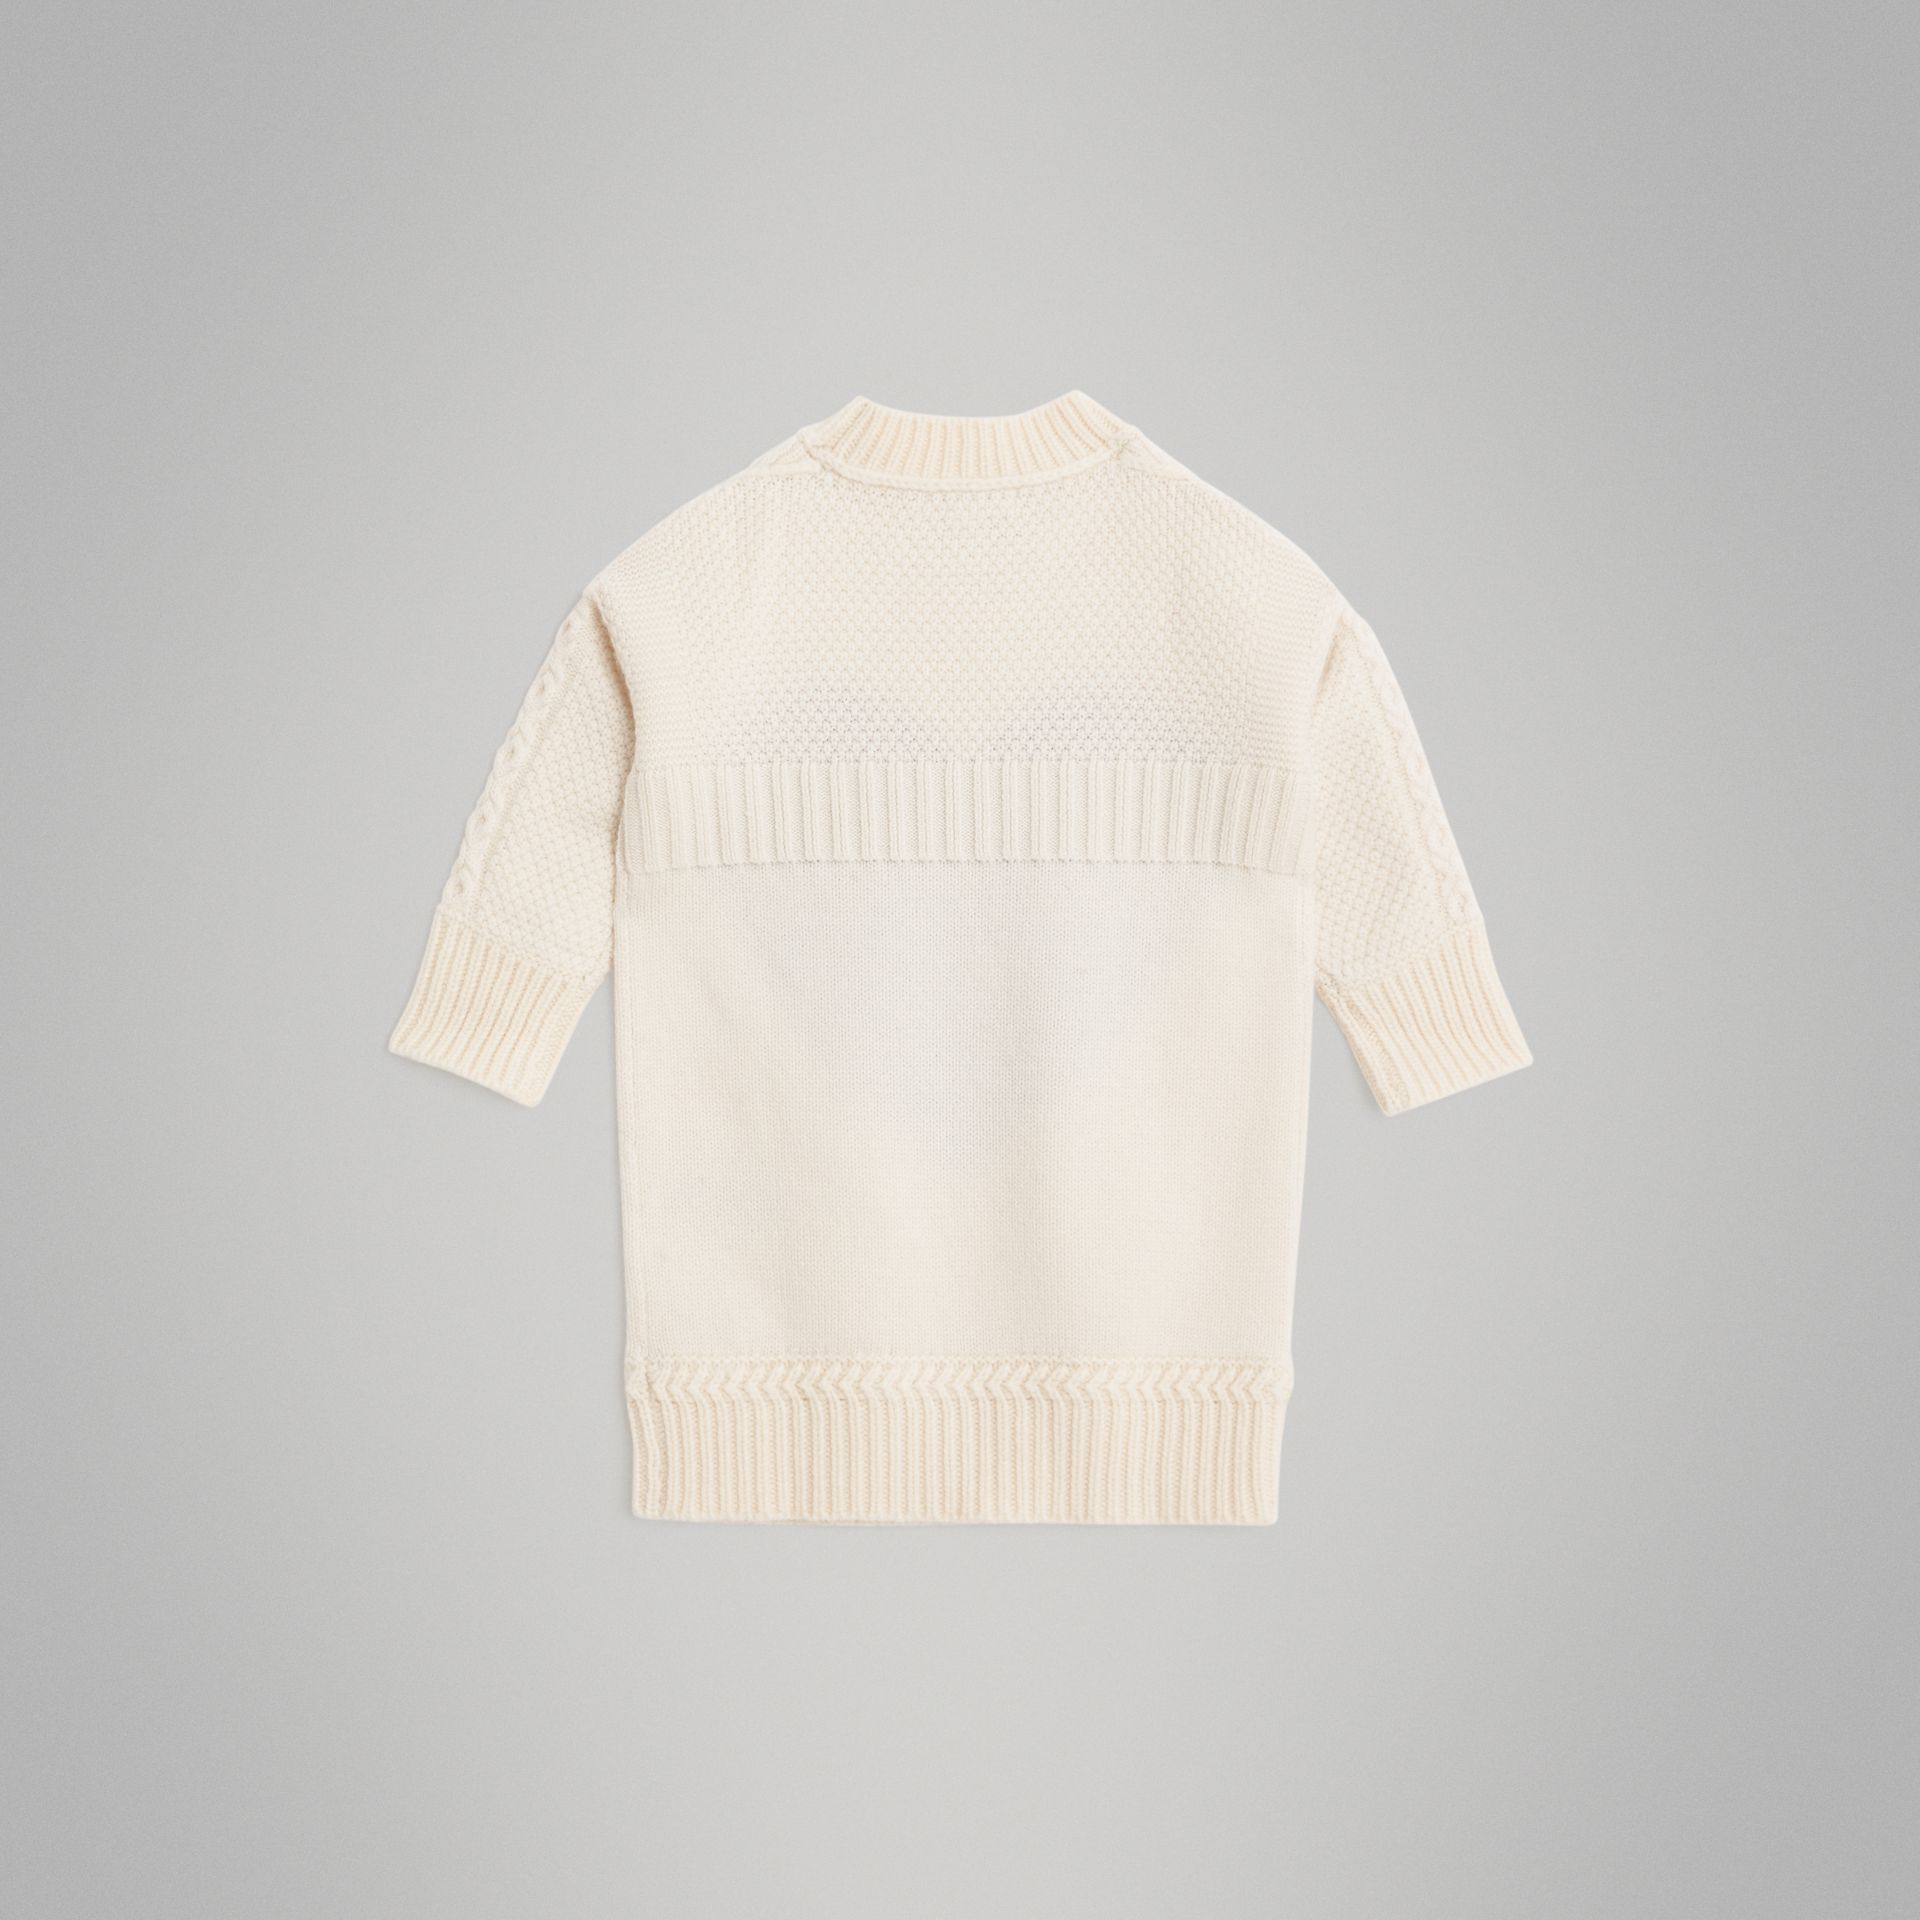 Heart Intarsia Wool Cashmere Sweater Dress in Ivory | Burberry United Kingdom - gallery image 3